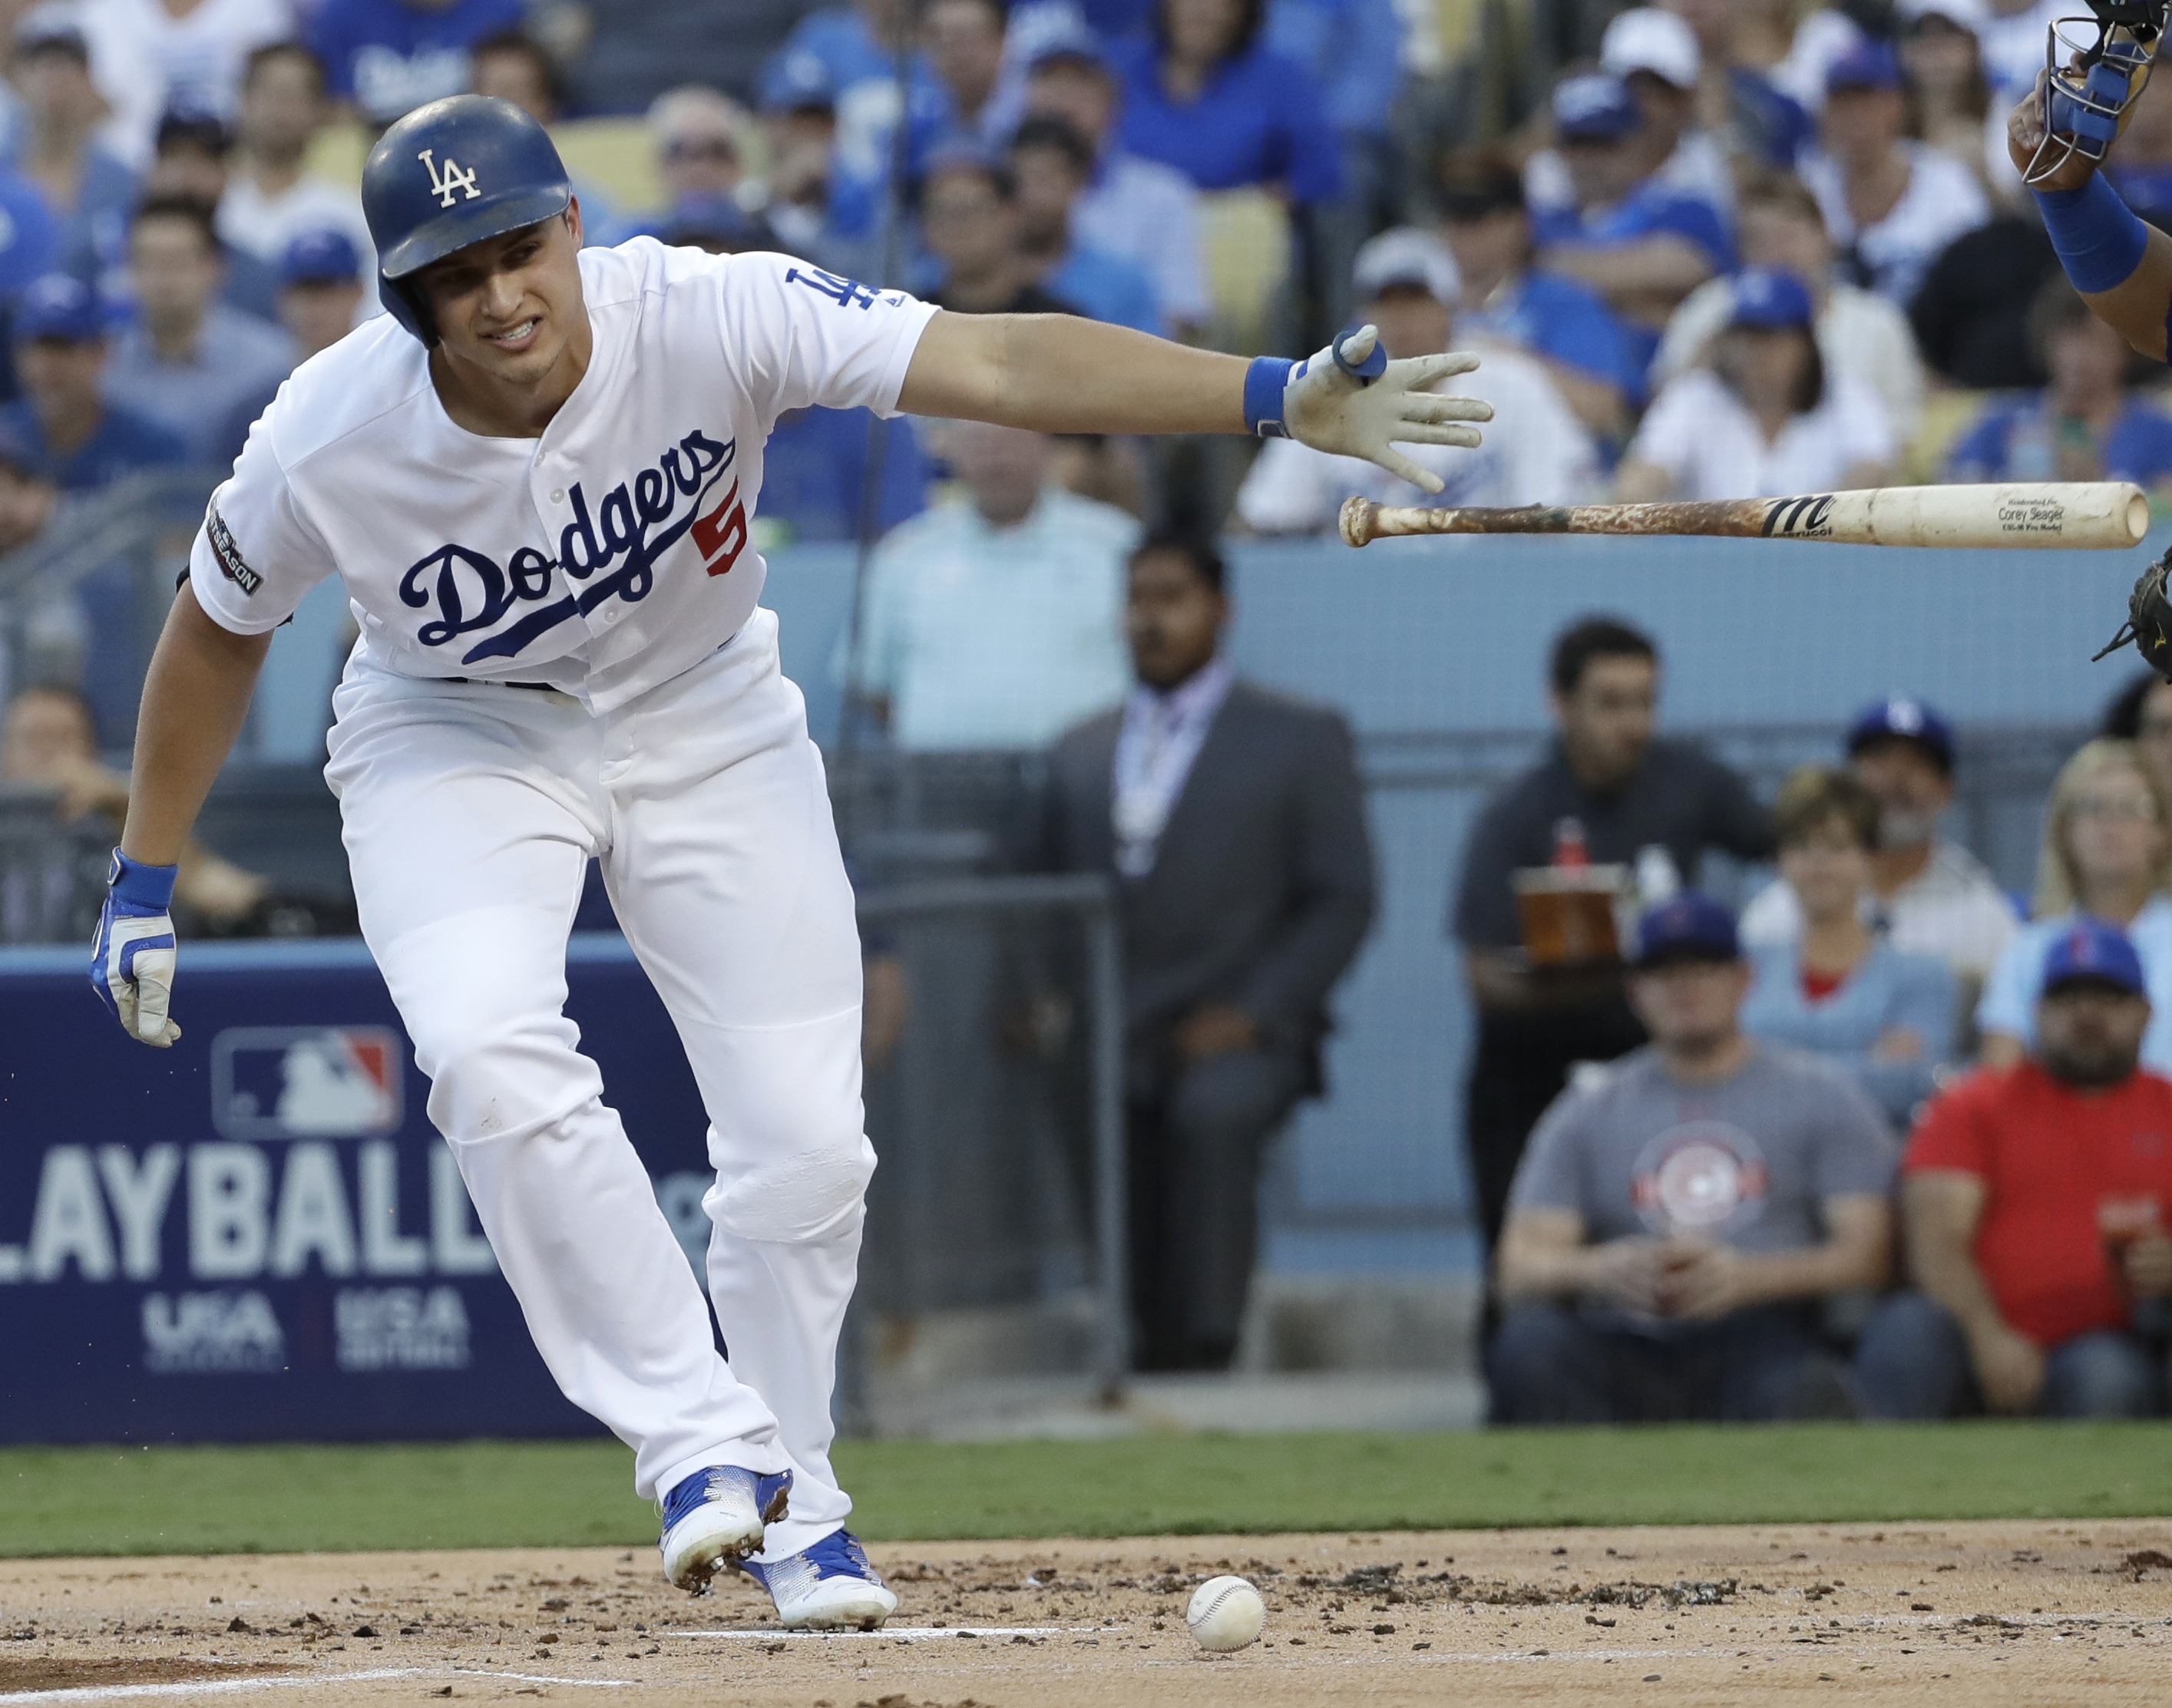 Los Angeles Dodgers' Corey Seager is hit by a pitcher during the first inning of Game 4 of the National League baseball championship series against the Chicago Cubs Wednesday, Oct. 19, 2016, in Los Angeles. (AP Photo/David J. Phillip)